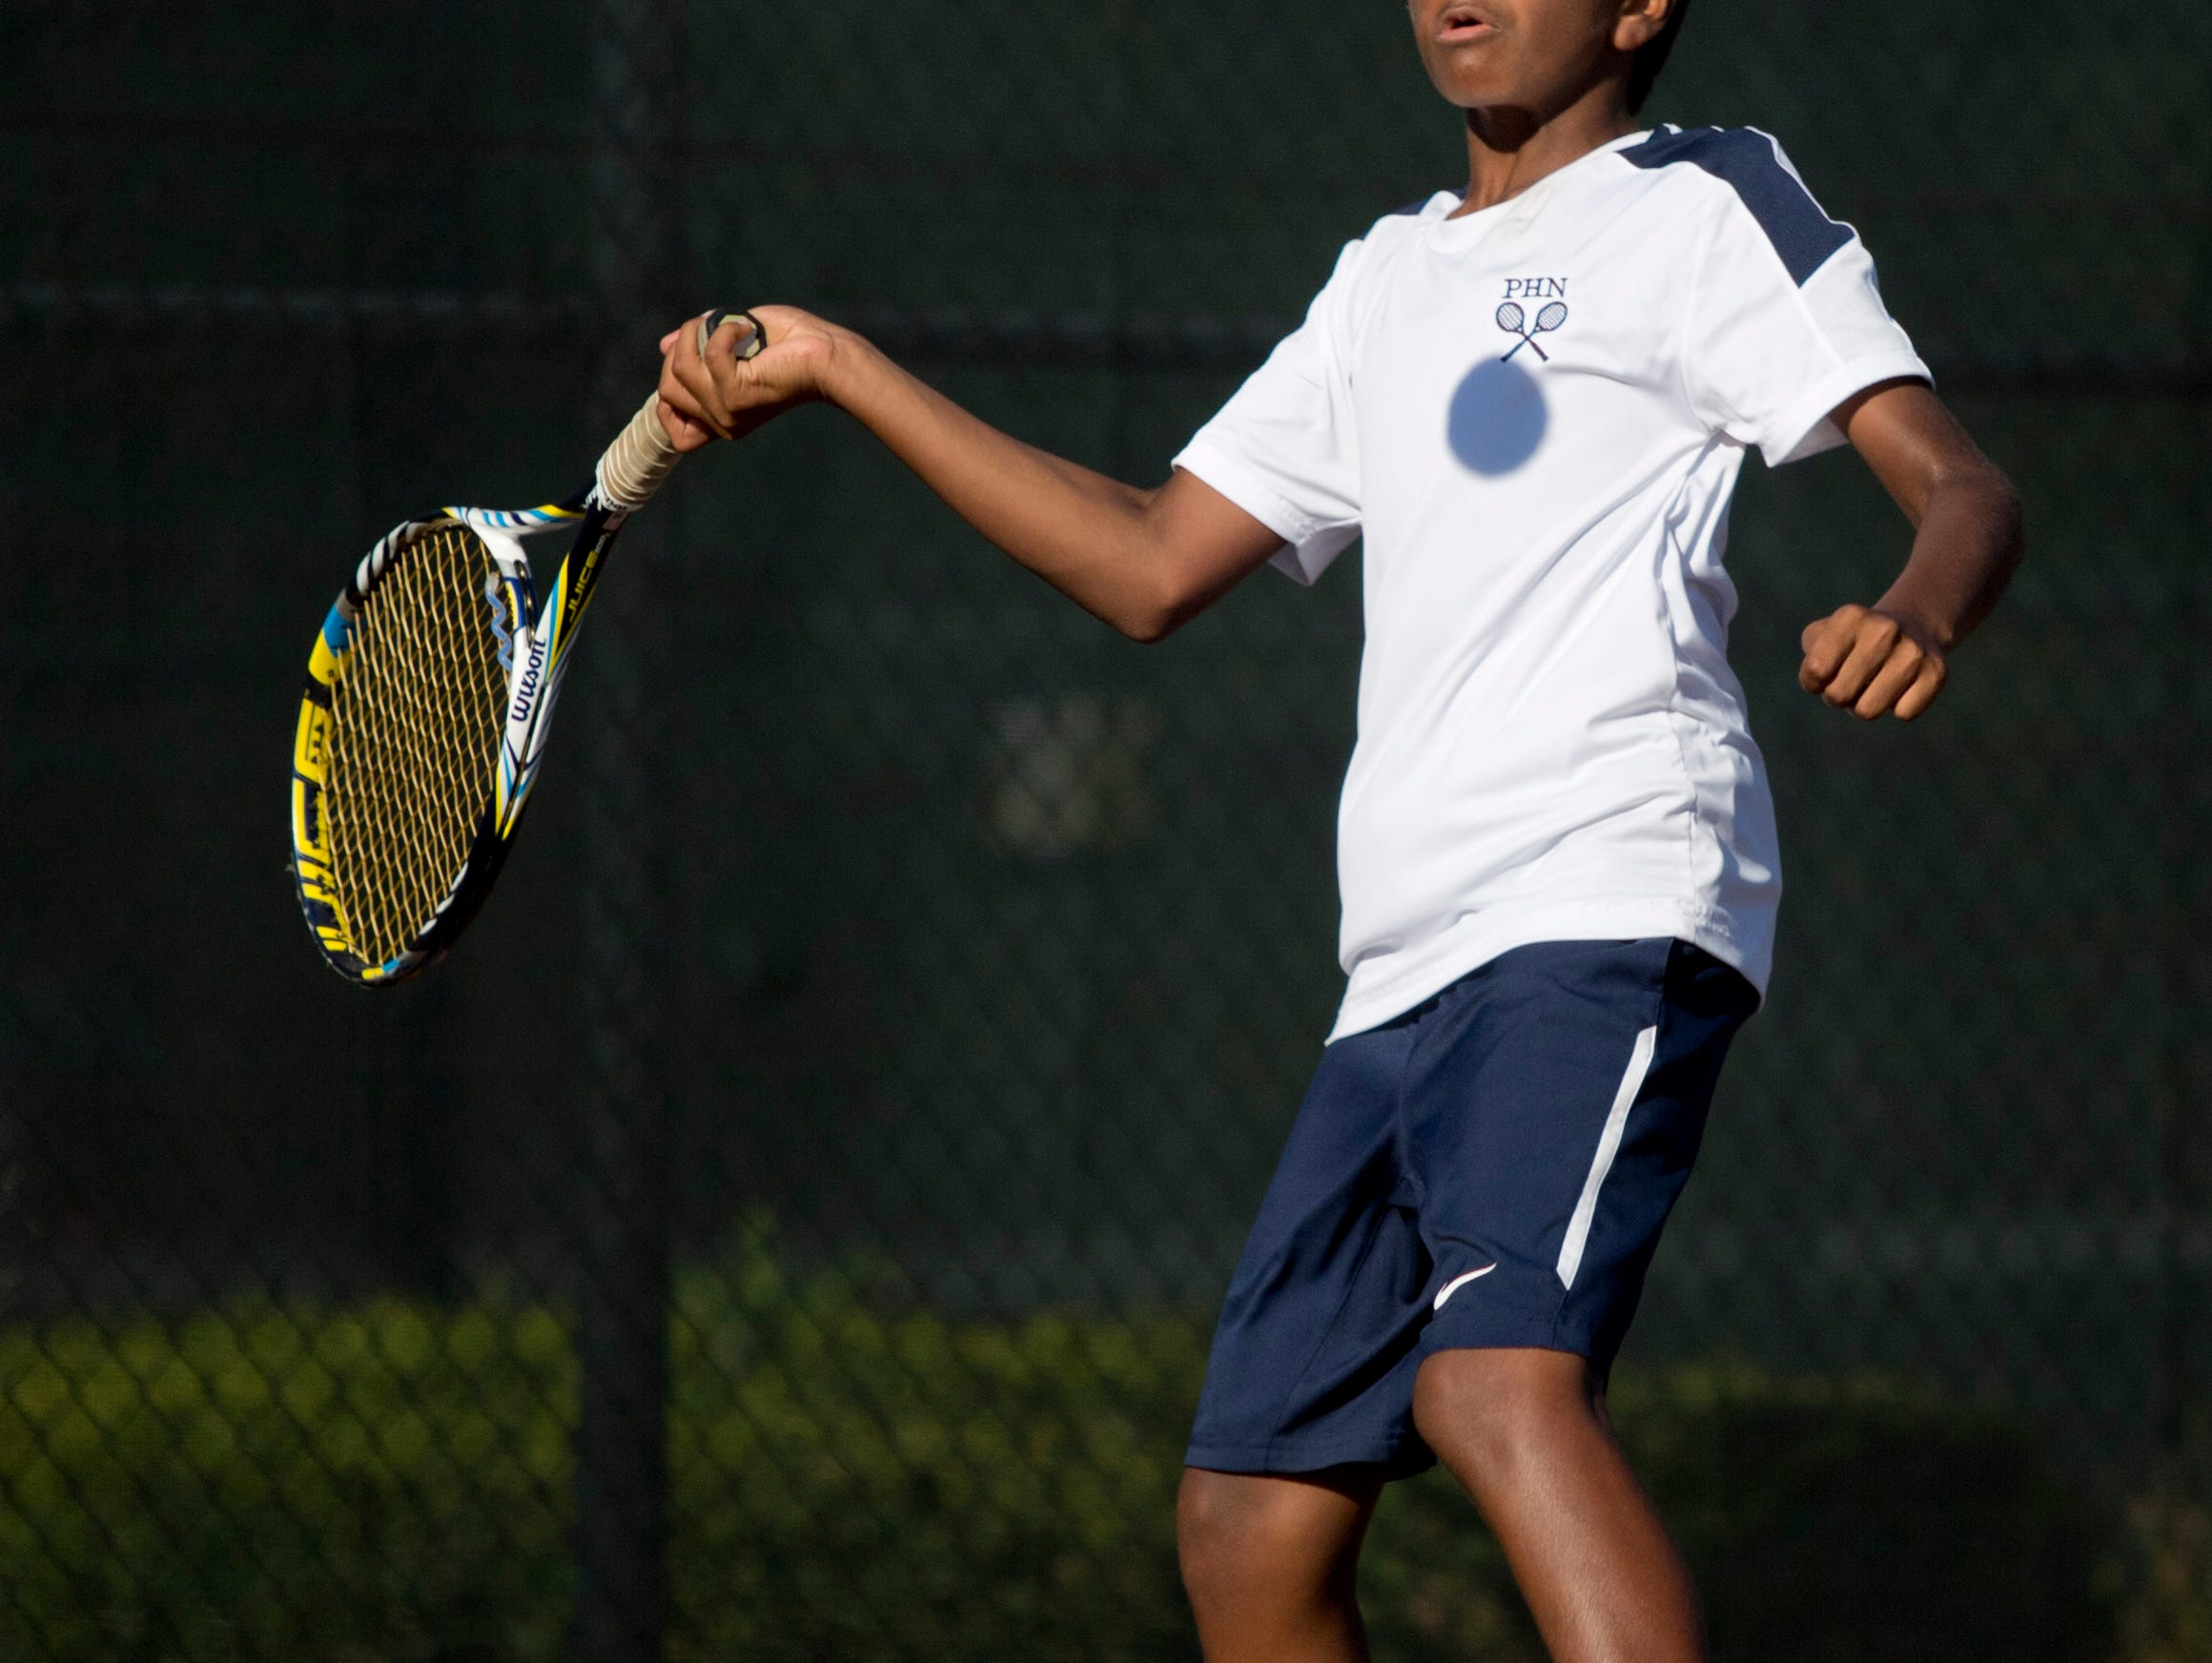 Port Huron Northern freshman Neehal Tumma returns the ball during a doubles tennis match Wednesday, September 23, 2015 at Port Huron Northern High School.